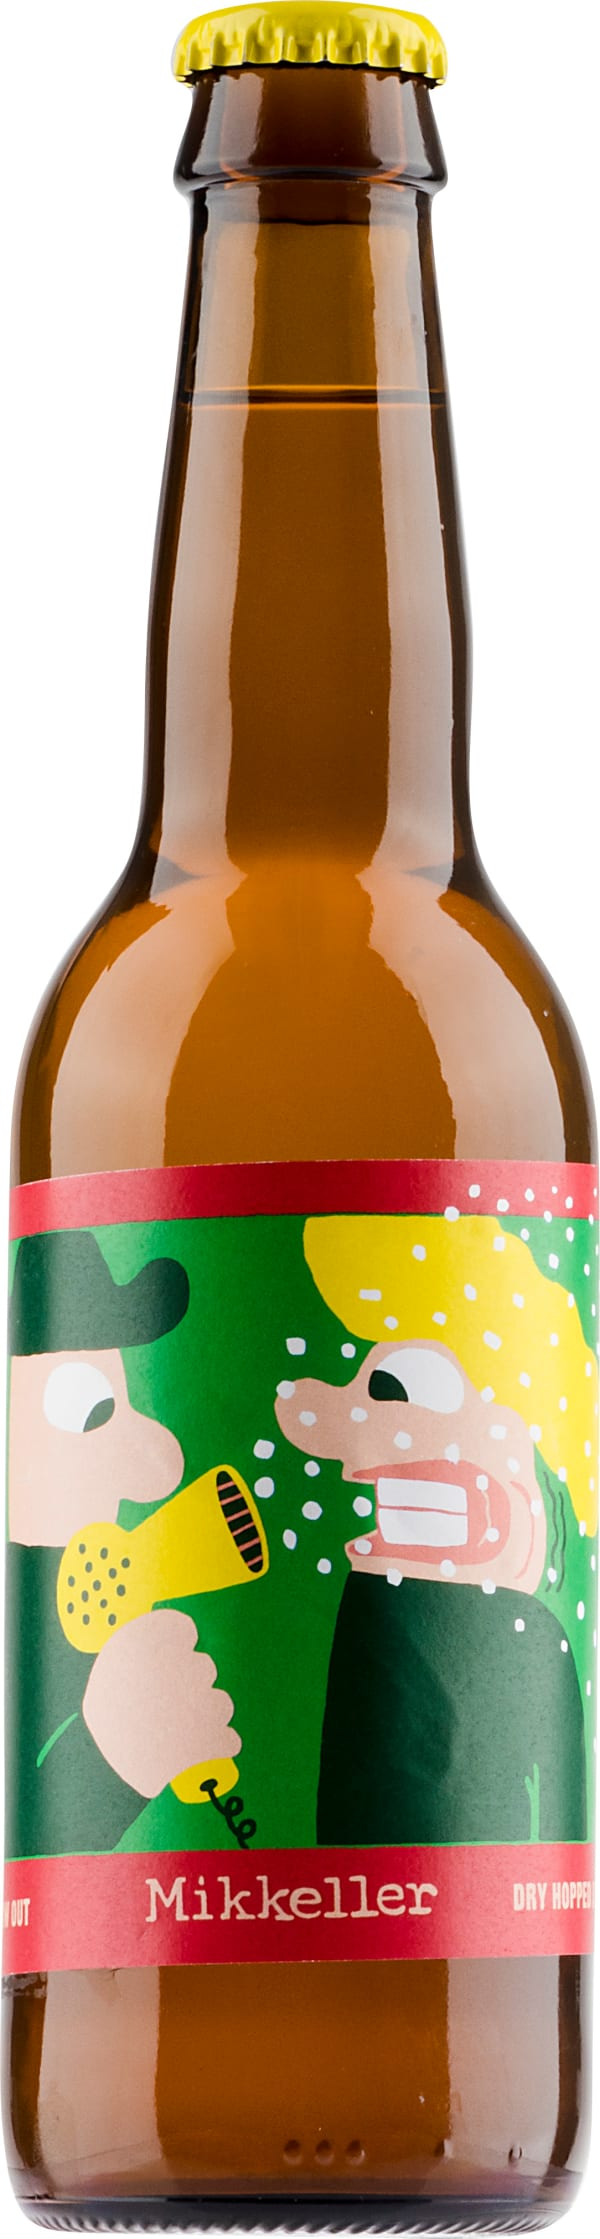 Mikkeller Snow Out Dry Hopped IPA